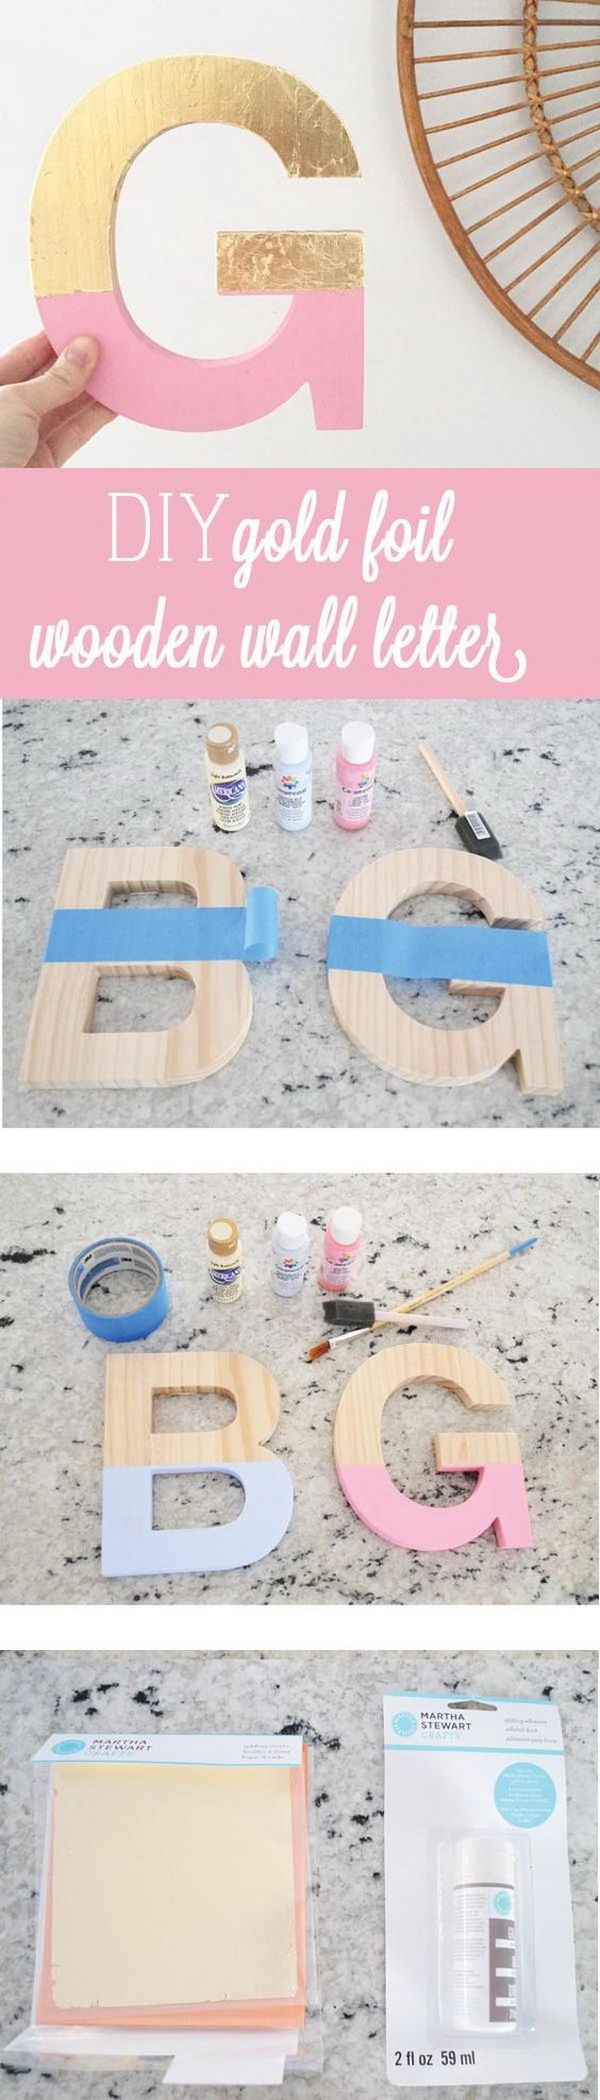 Foil Wooden Letter. Super cute and relatively easy! Look great in kid's room!